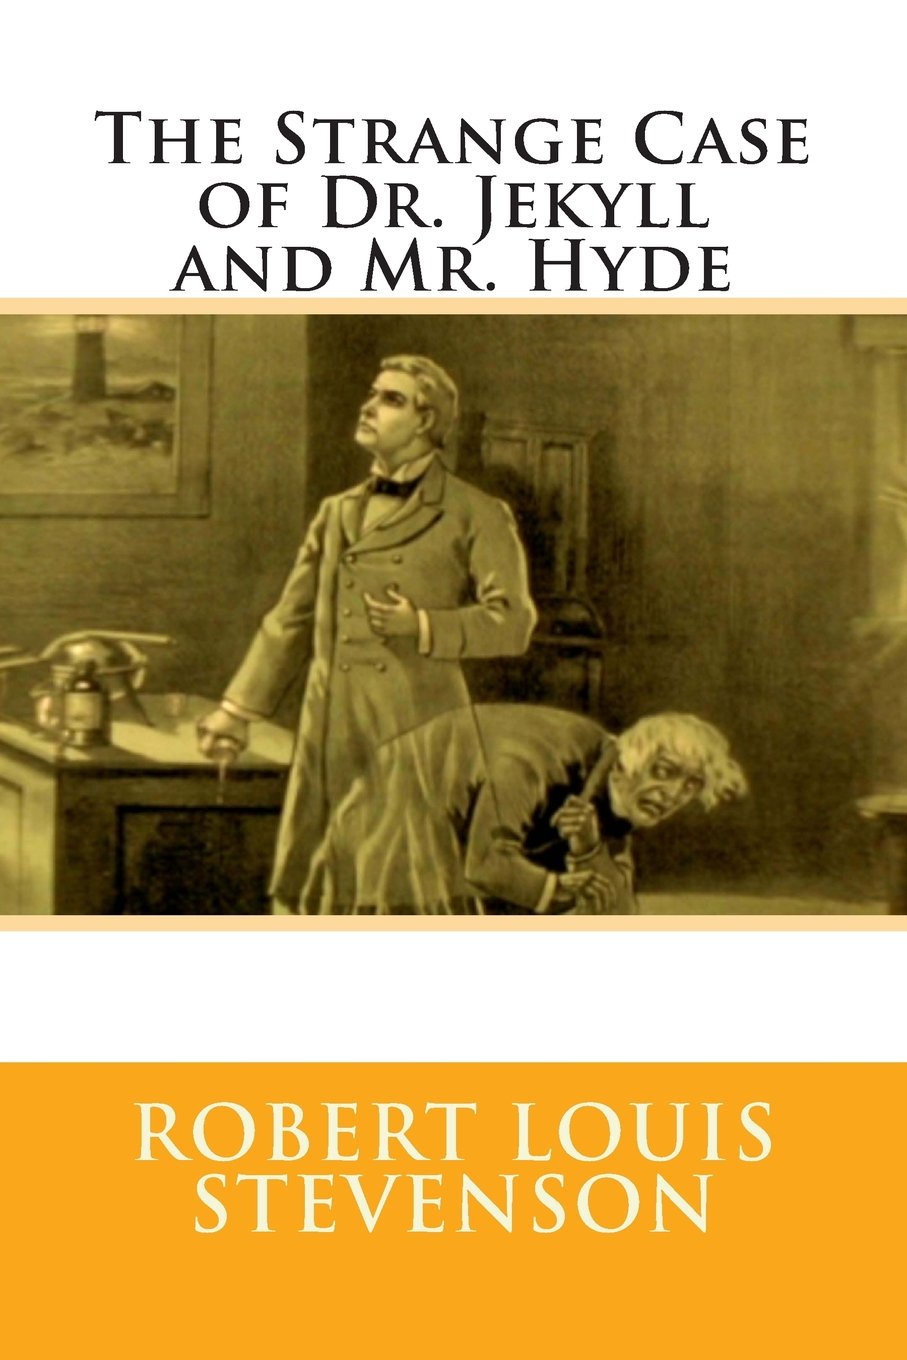 dr jekyll and mrhyde